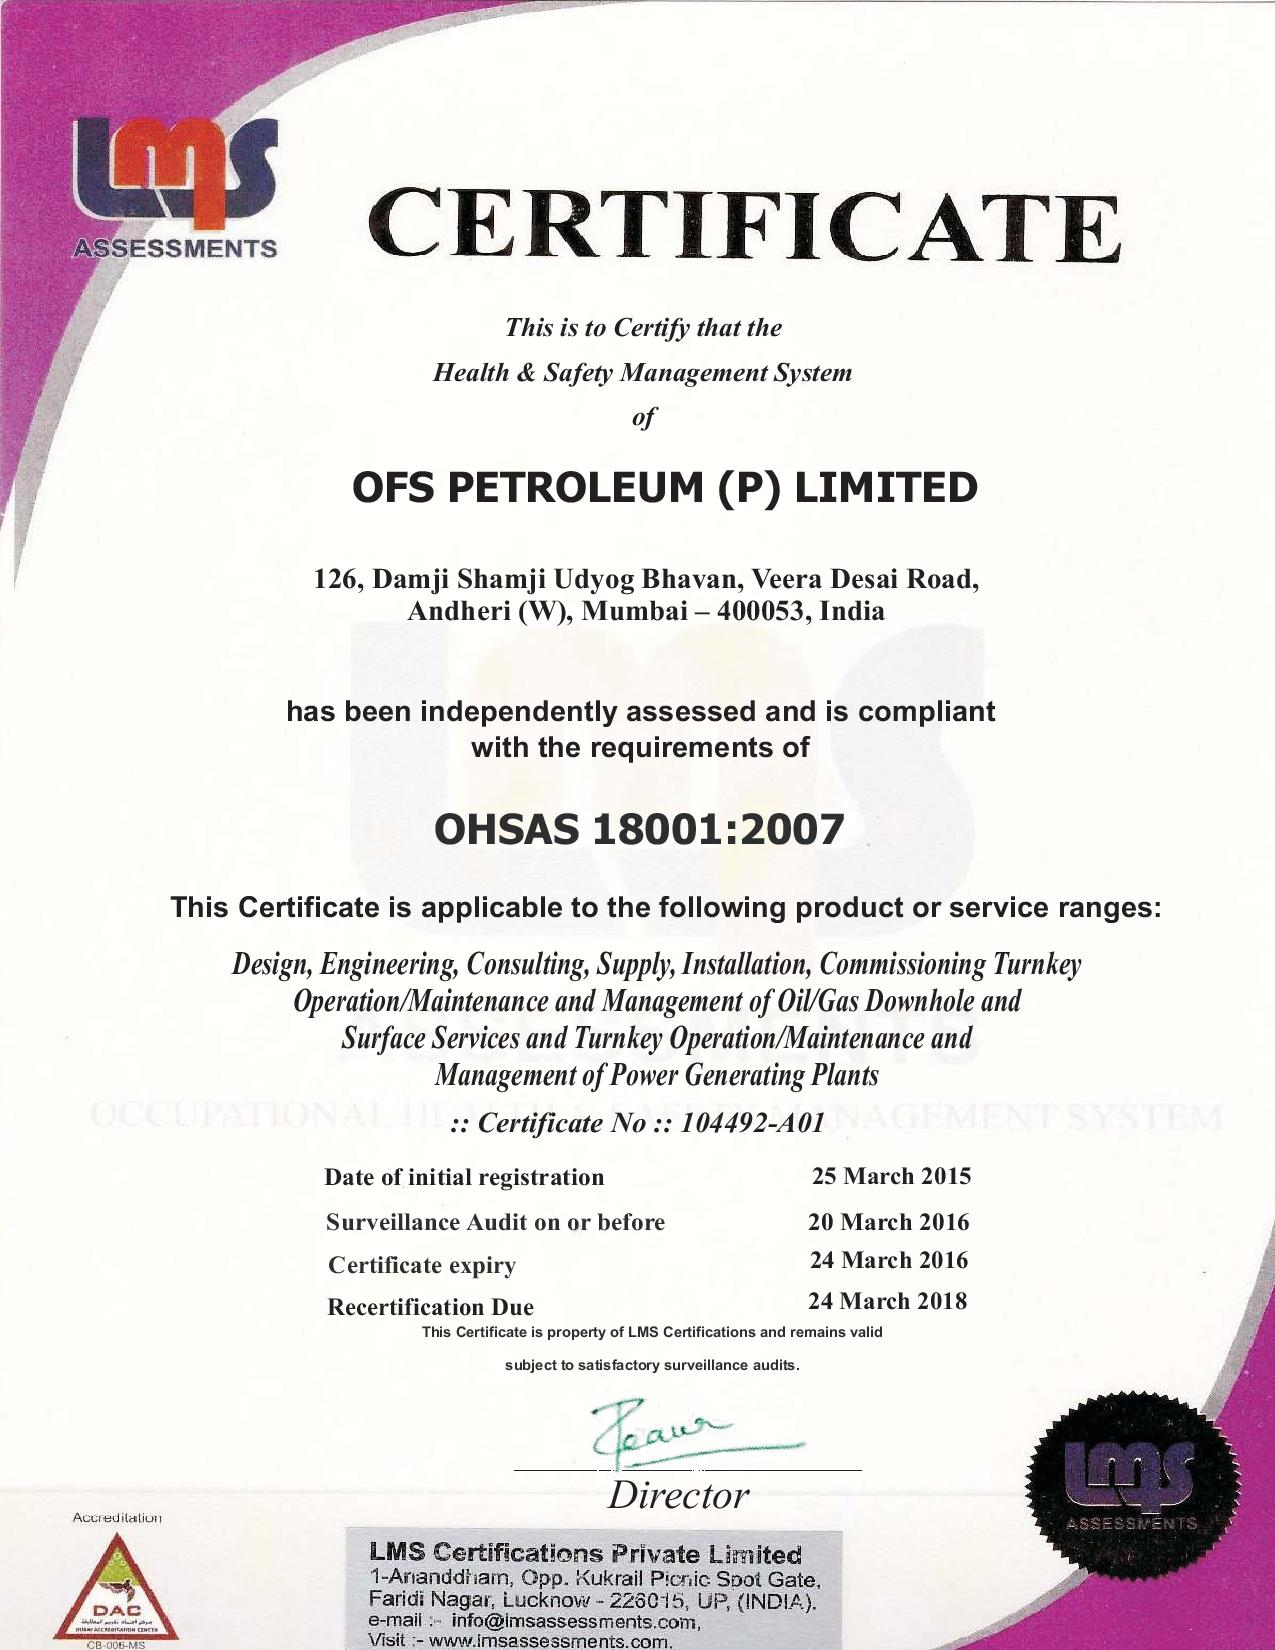 OFS ISO 9001:2008 & OHSAS 18001:2007 Certified Company